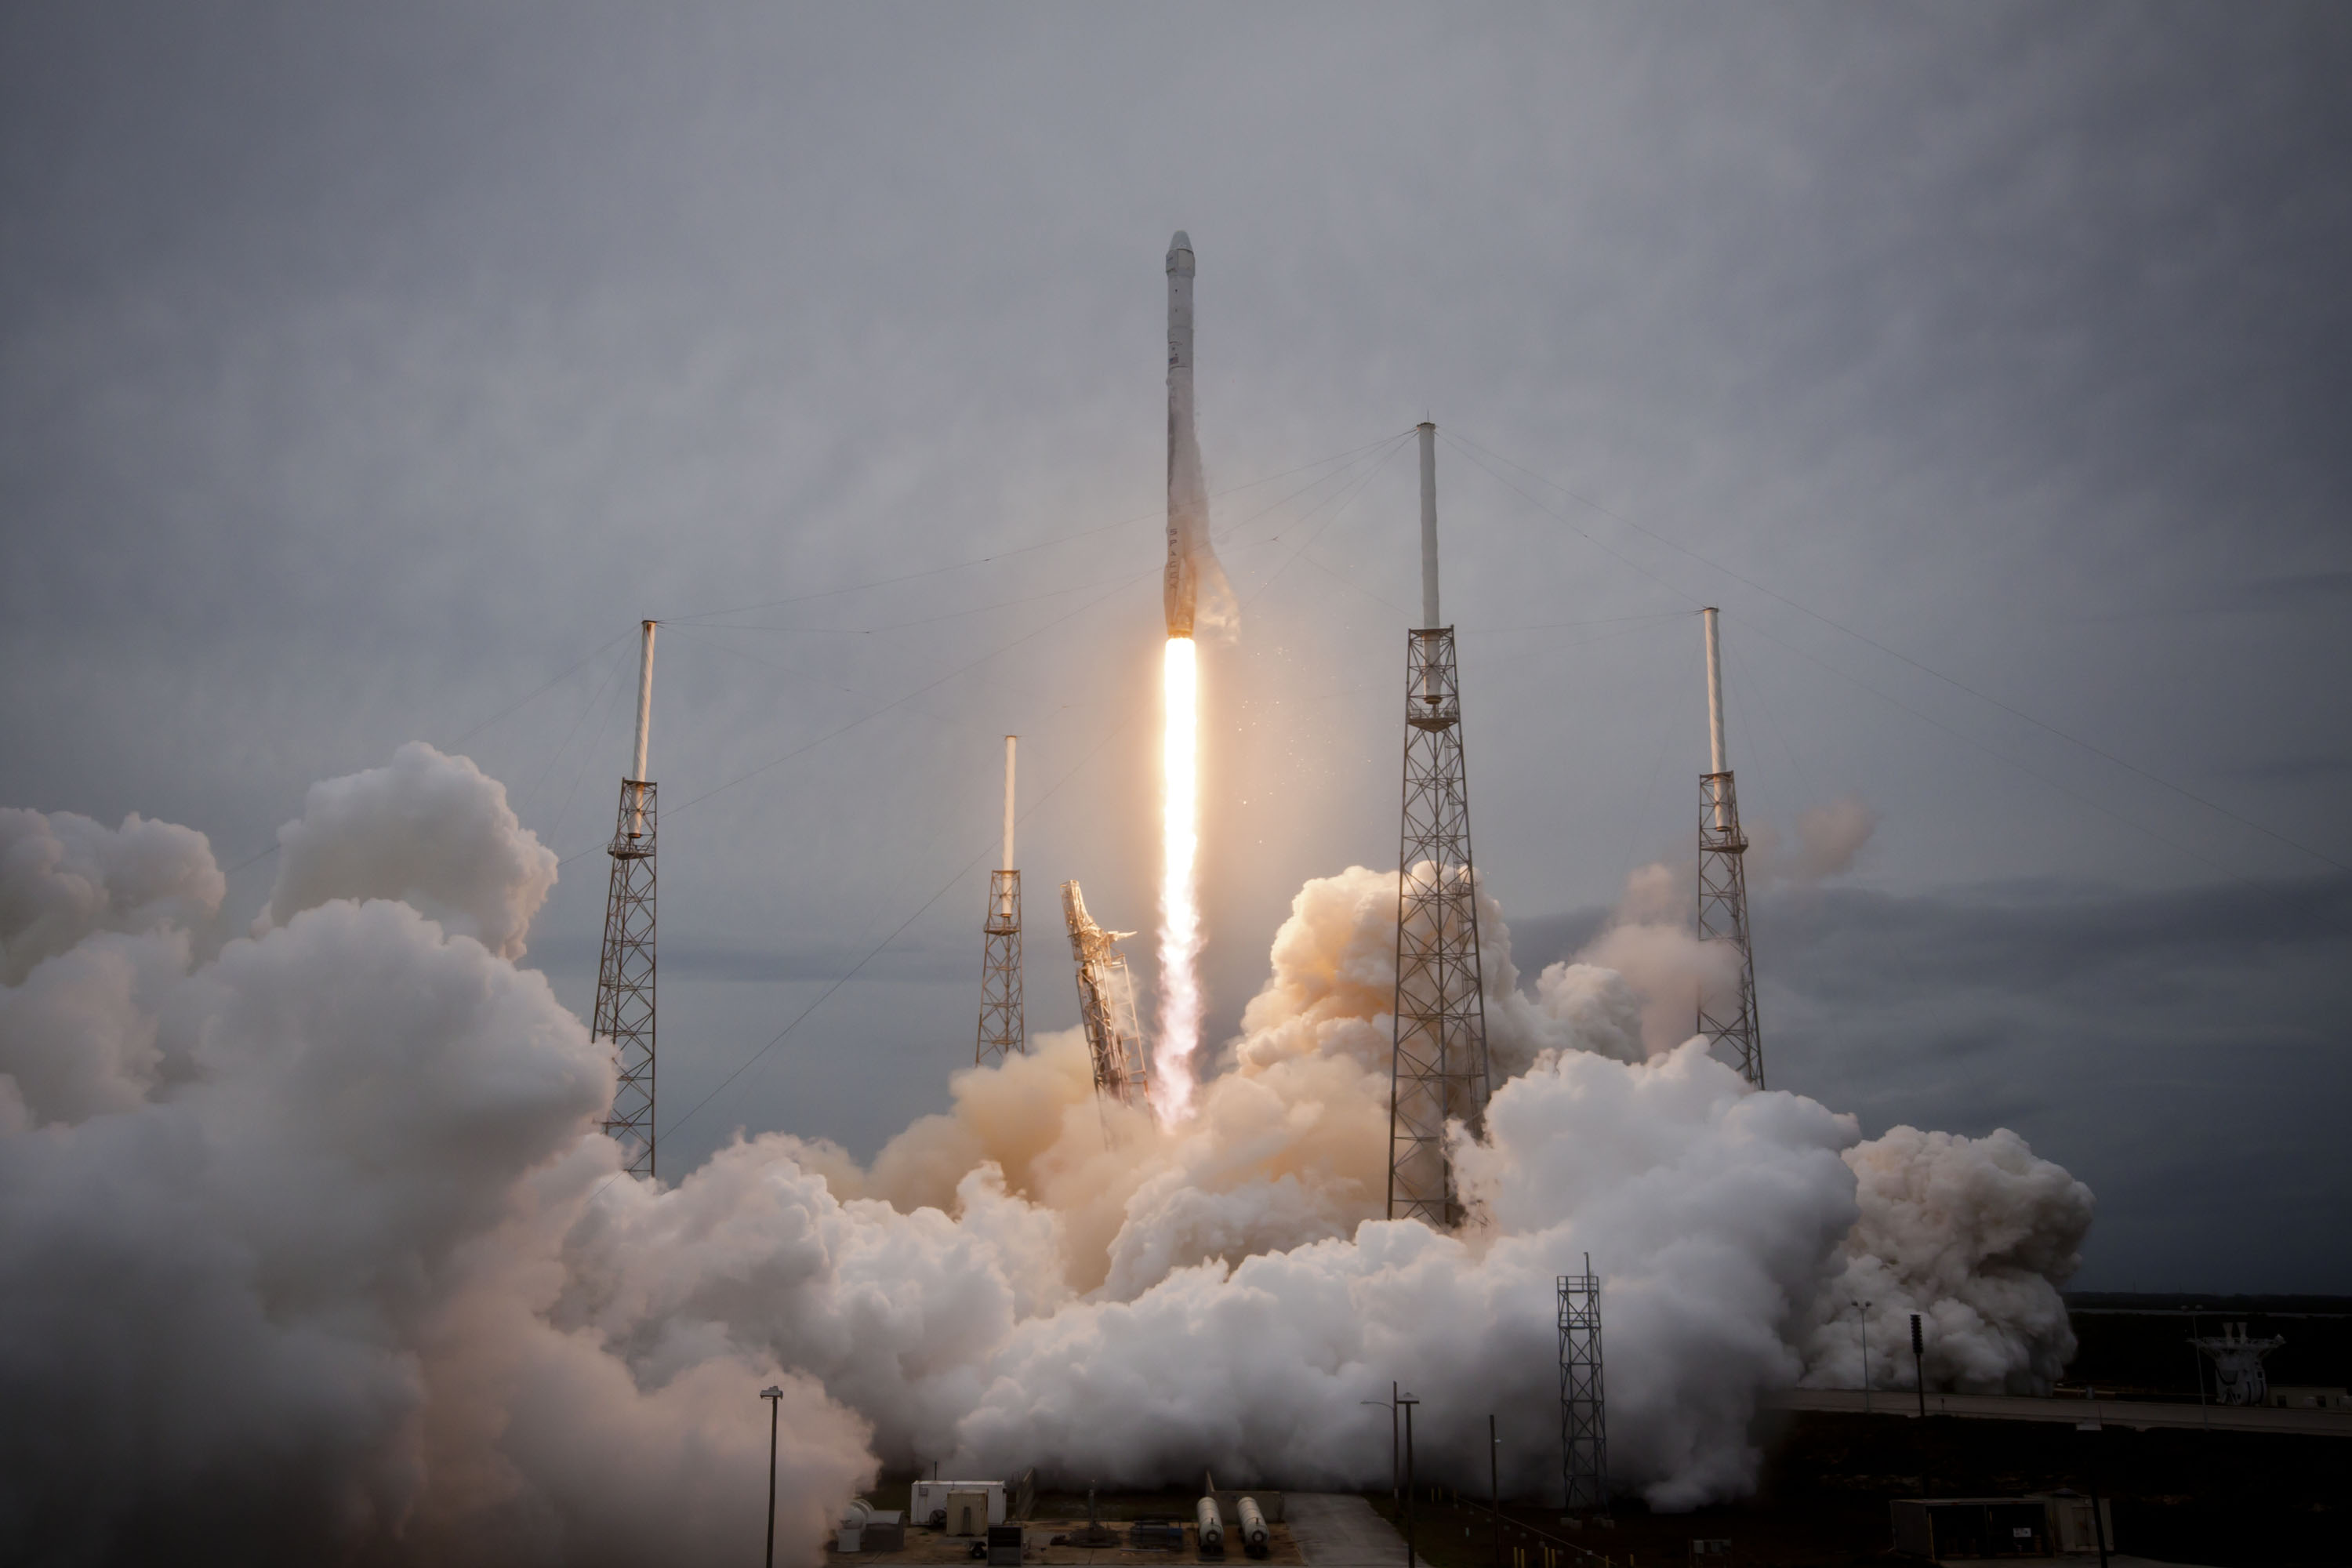 Liftoff! SpaceX Launches Dragon's 3rd Cargo Flight